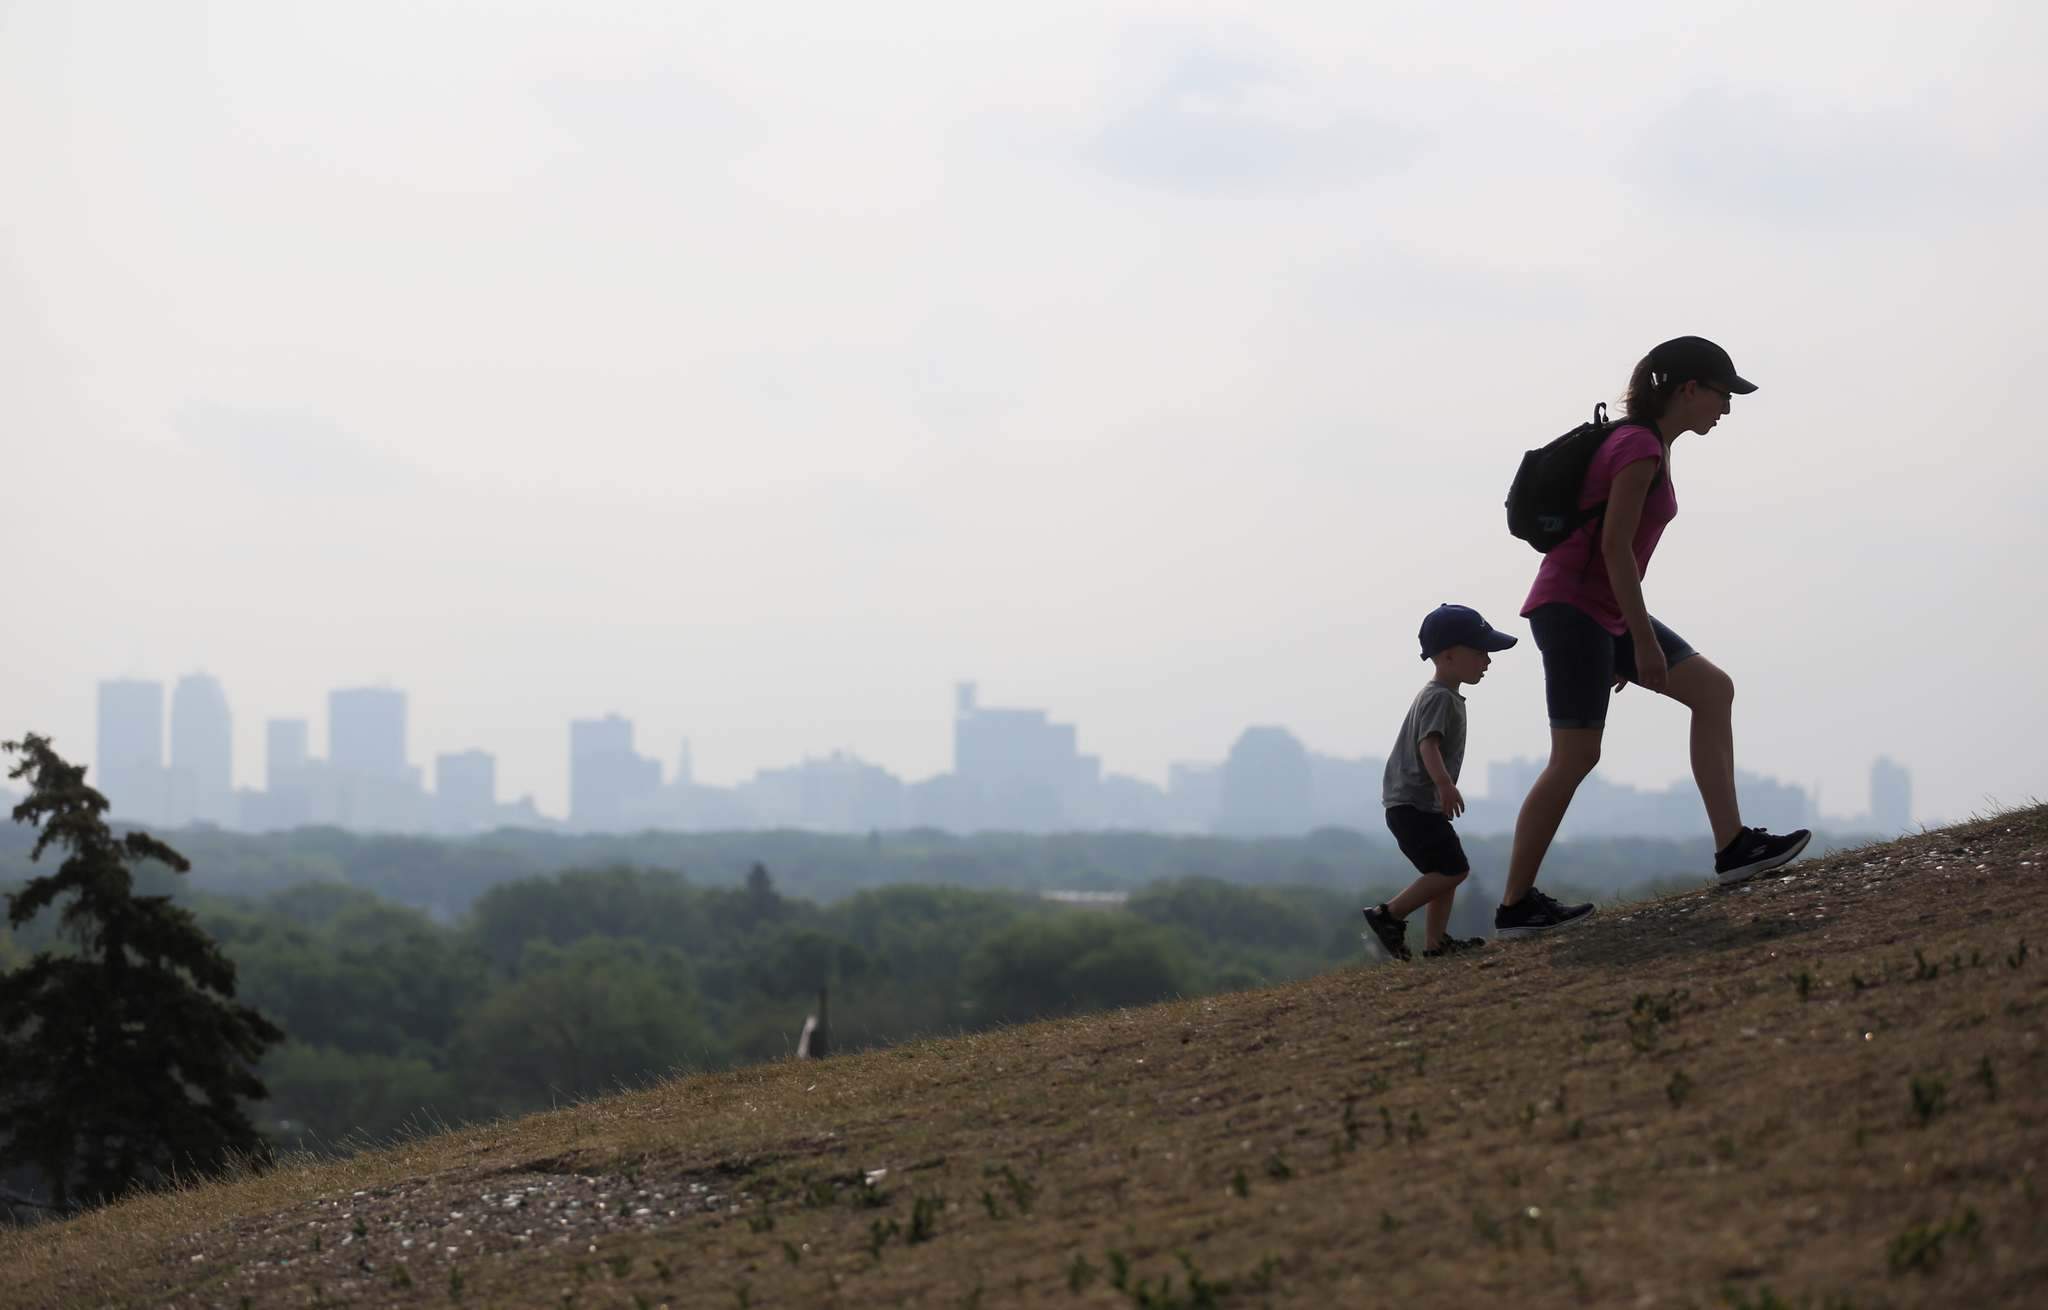 Allison Heinrichs and her son Kolton, 2, walk up Garbage Hill in front of smoke from forest fires in B.C. in August. (Trevor Hagan / Free Press files) </p>